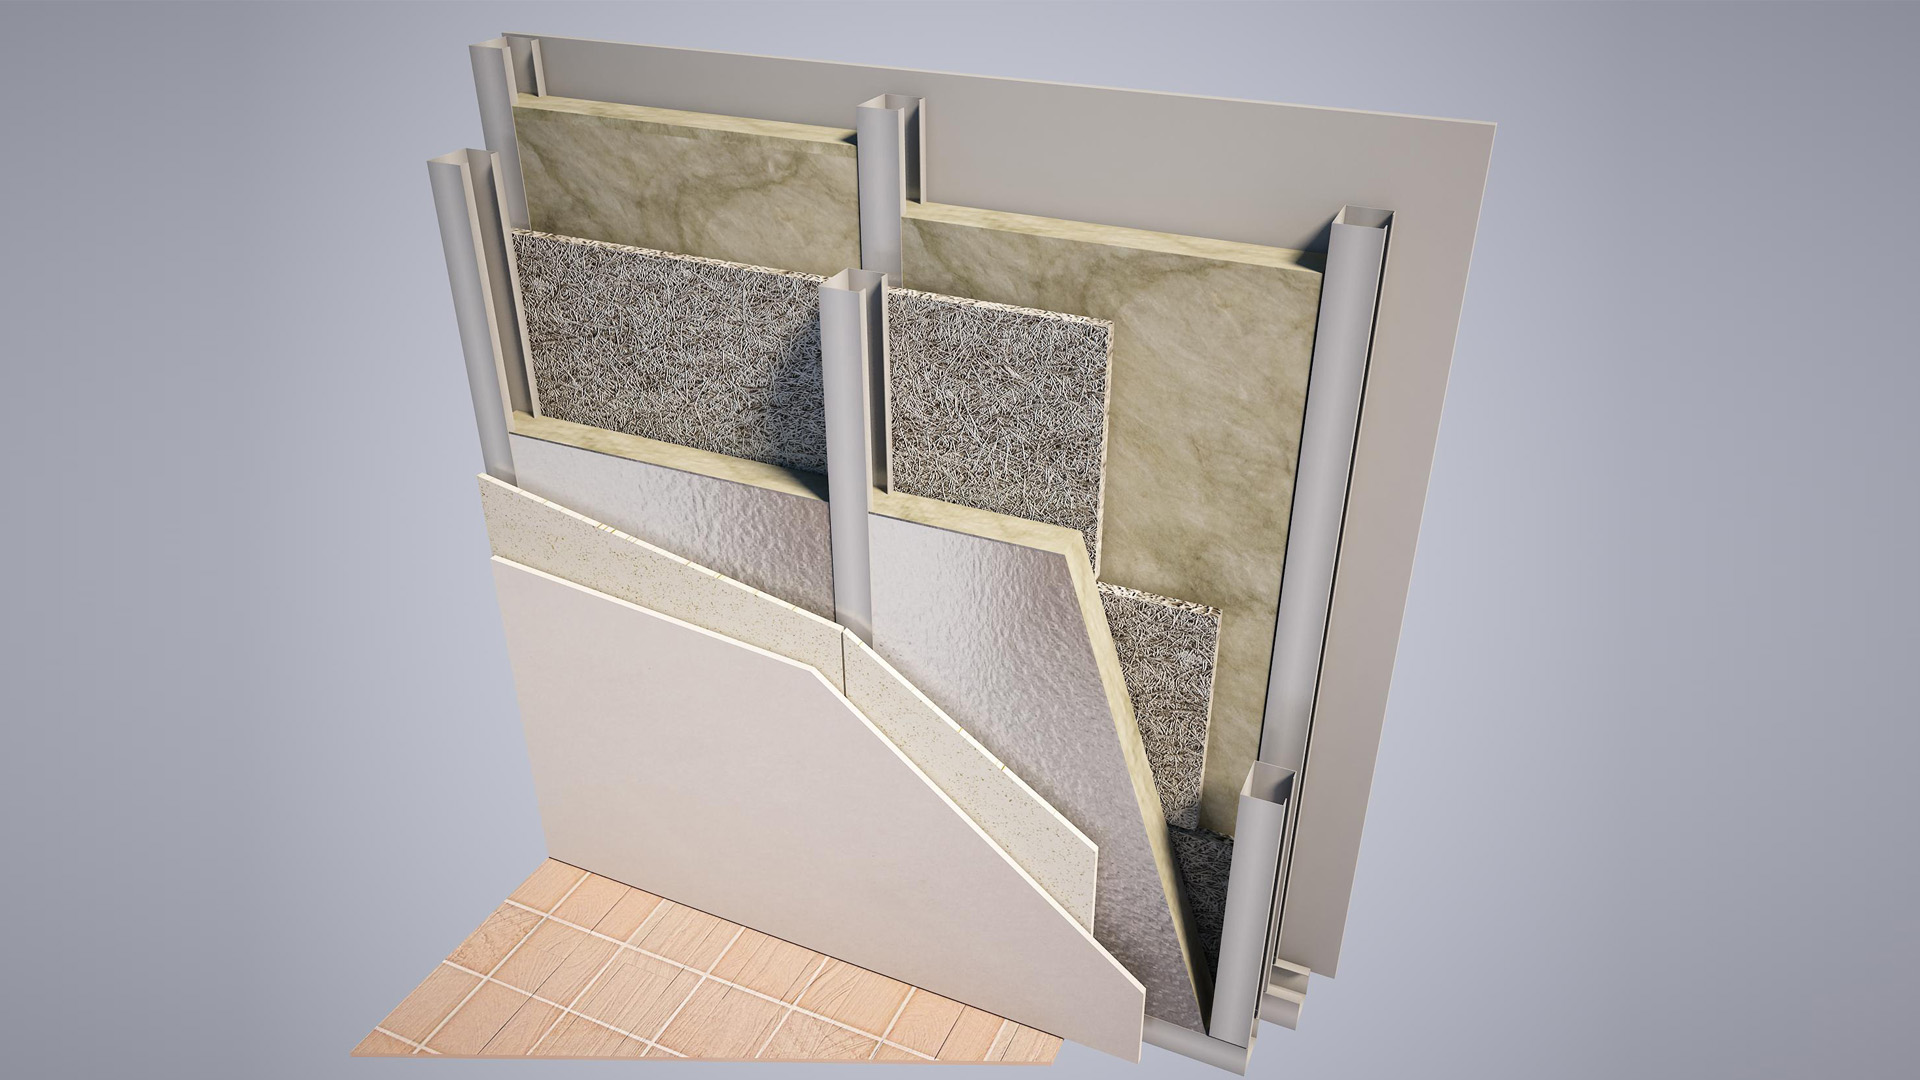 Insulated wall stratigraphy with URSA TERRA mineral wool panels